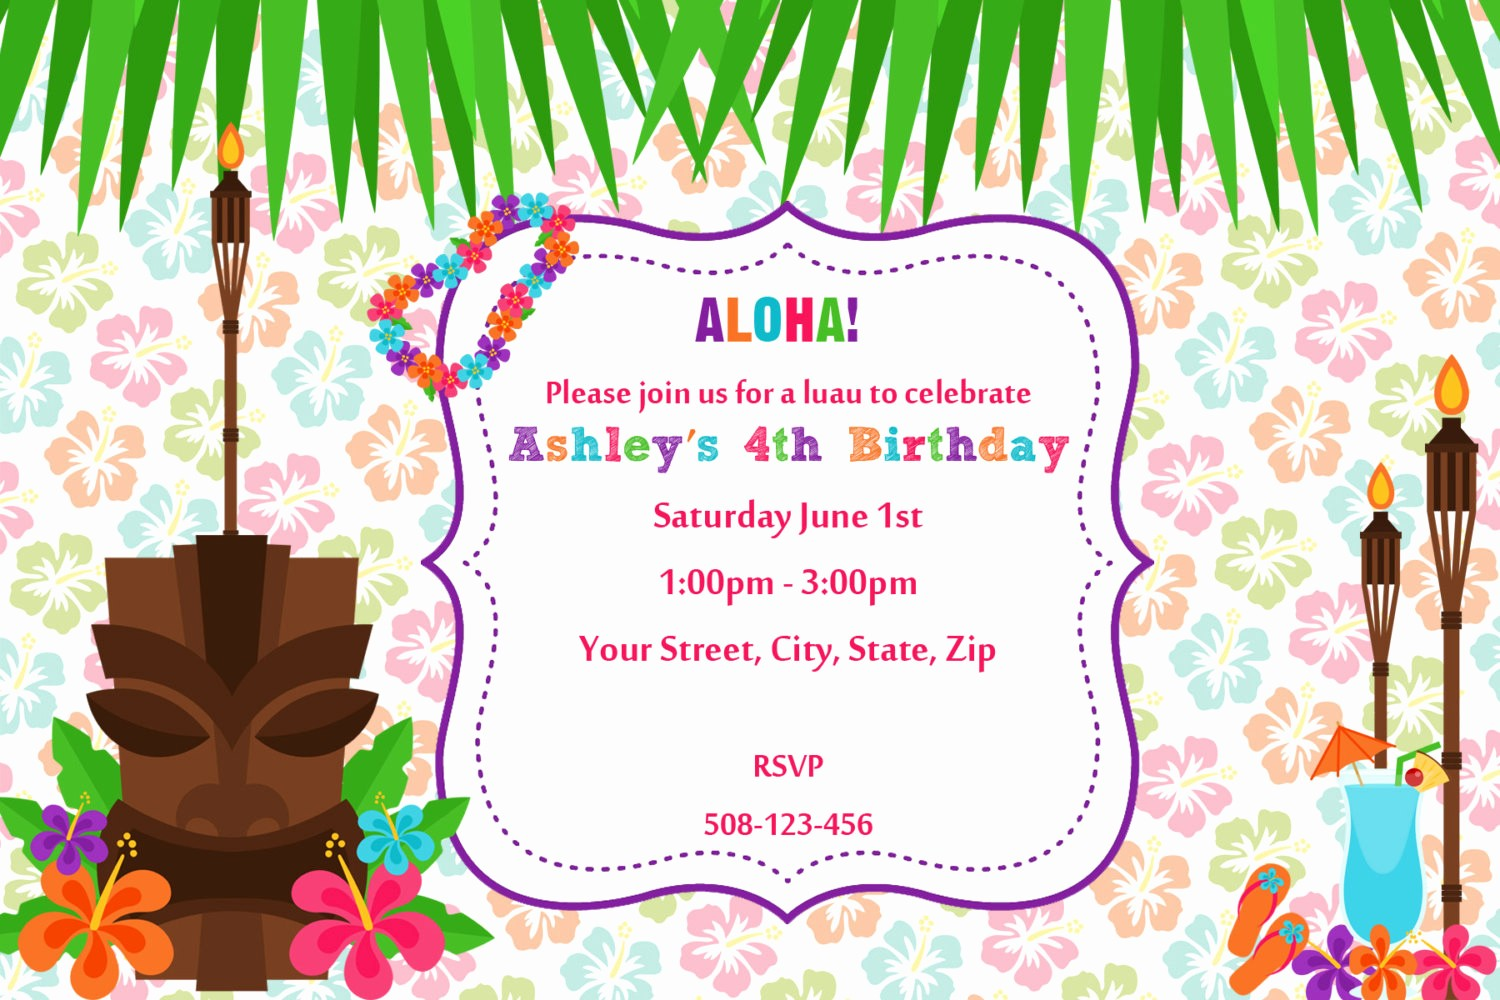 Hawaiian theme Party Invitations Printable Elegant 20 Luau Birthday Invitations Designs